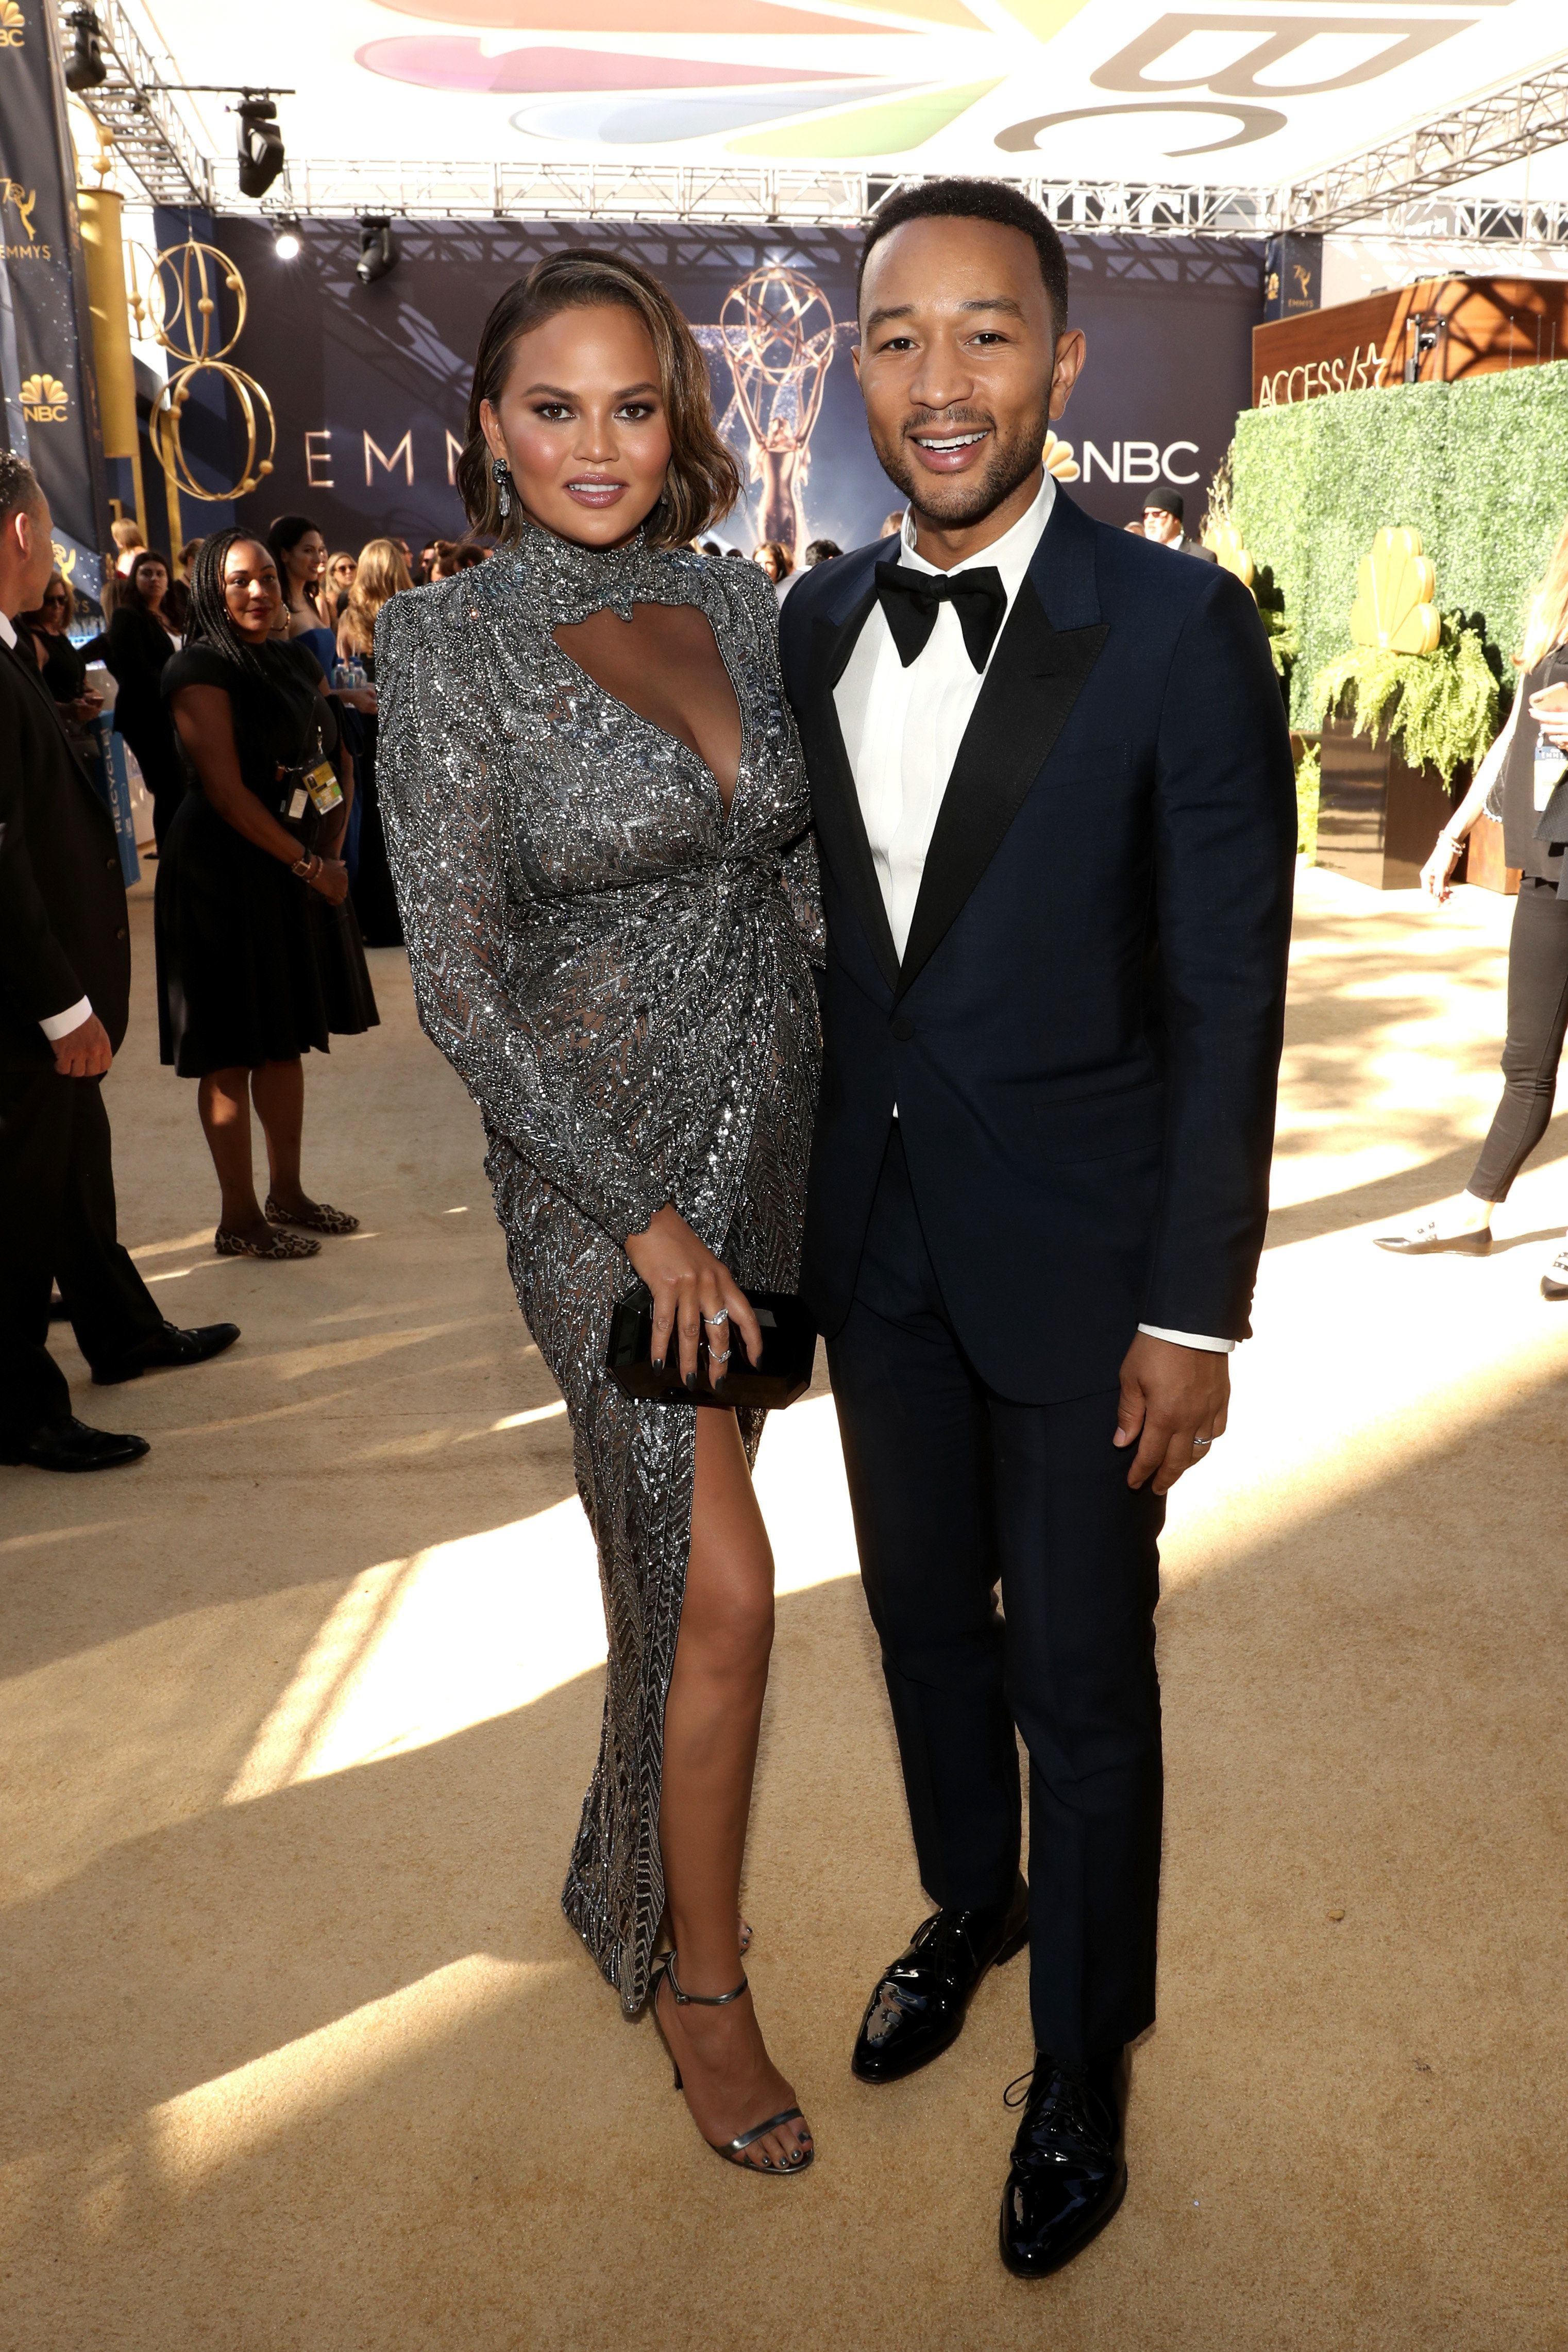 LOS ANGELES, CA - SEPTEMBER 17:  70th ANNUAL PRIMETIME EMMY AWARDS -- Pictured: (l-r) Model Chrissy Teigen and actor/singer John Legend arrive to the 70th Annual Primetime Emmy Awards held at the Microsoft Theater on September 17, 2018.  NUP_184218  (Photo by Todd Williamson/NBC/NBCU Photo Bank via Getty Images)